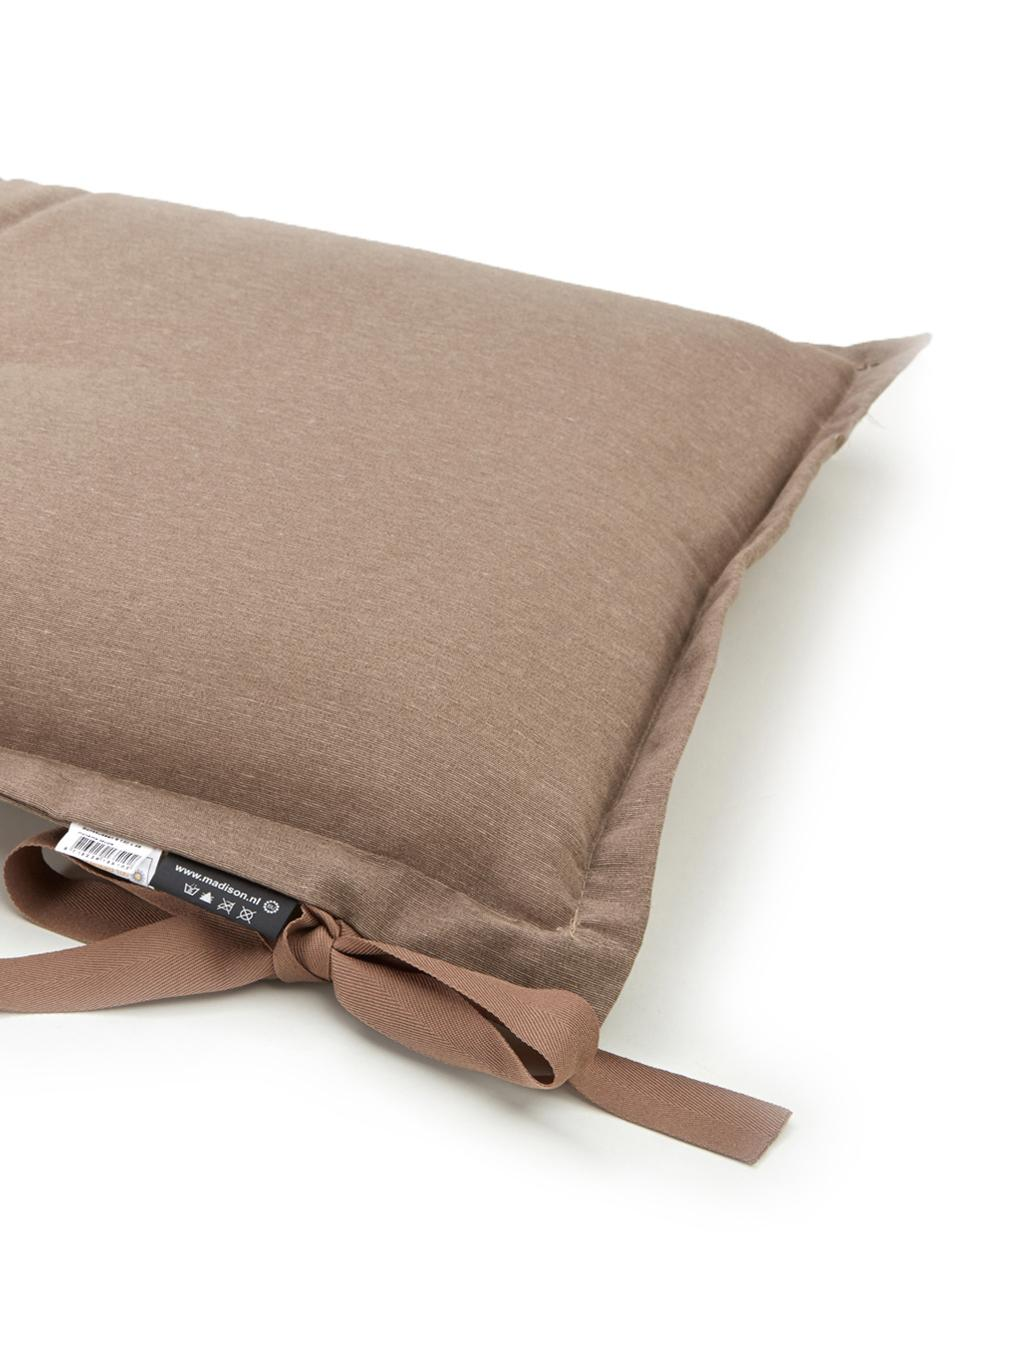 Coussin pour banc taupe Panama, Taupe